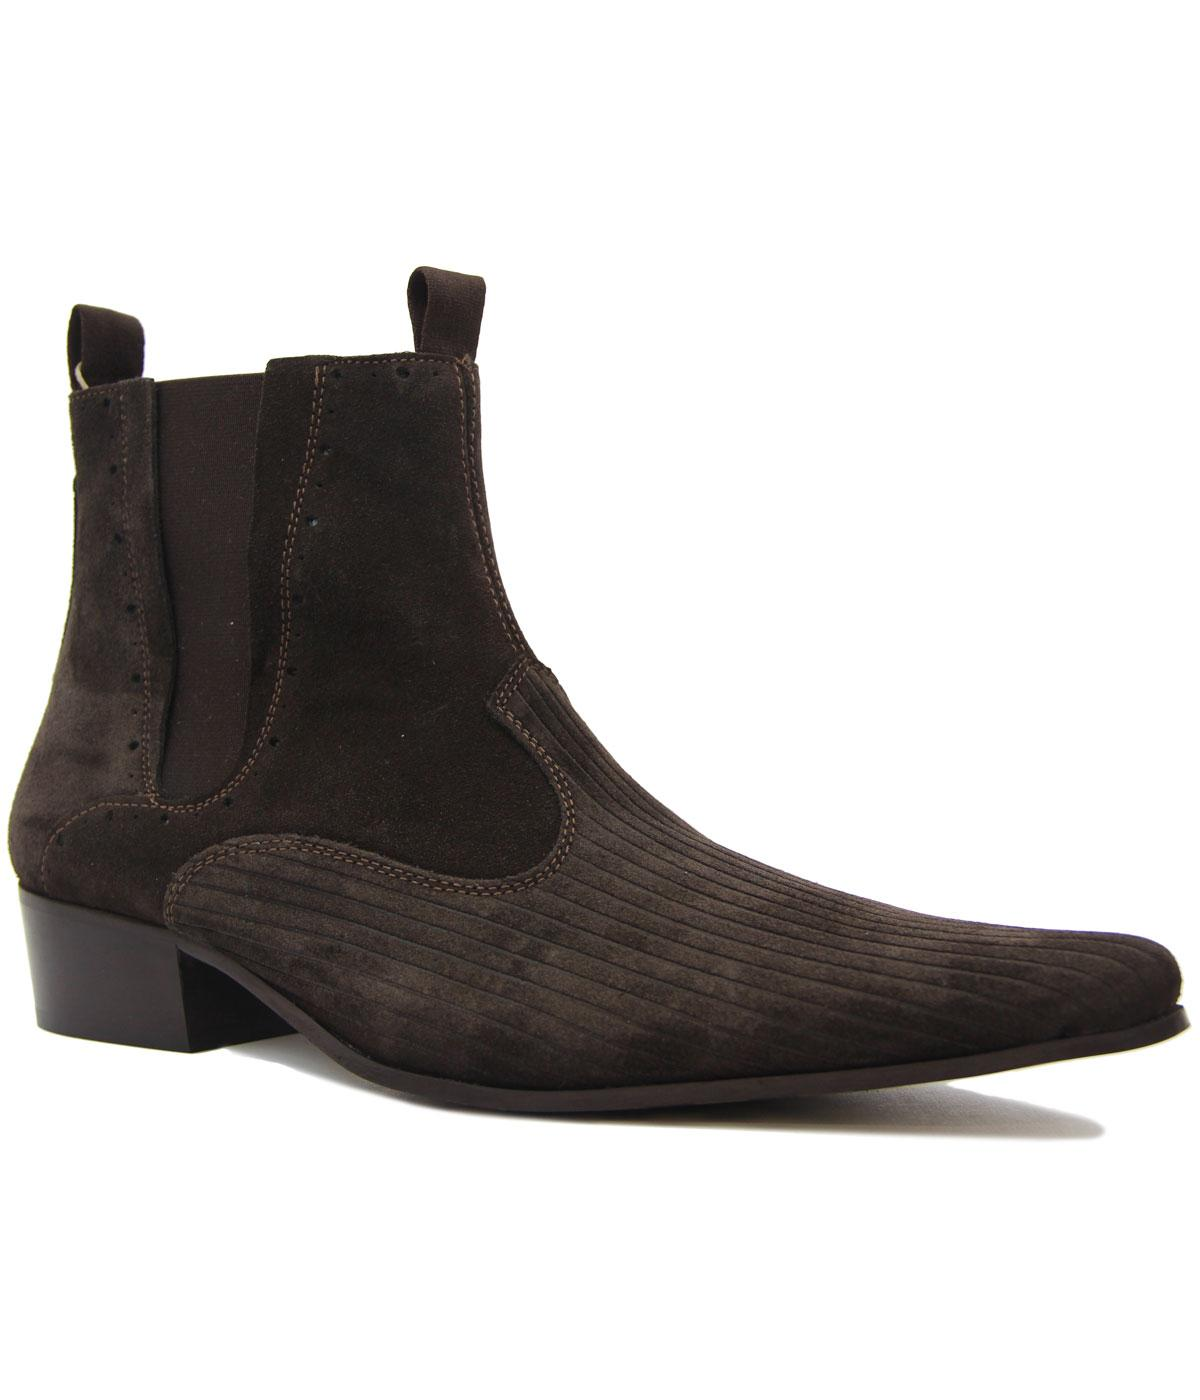 Freakbeat DELICIOUS JUNCTION Suede Chelsea Boots